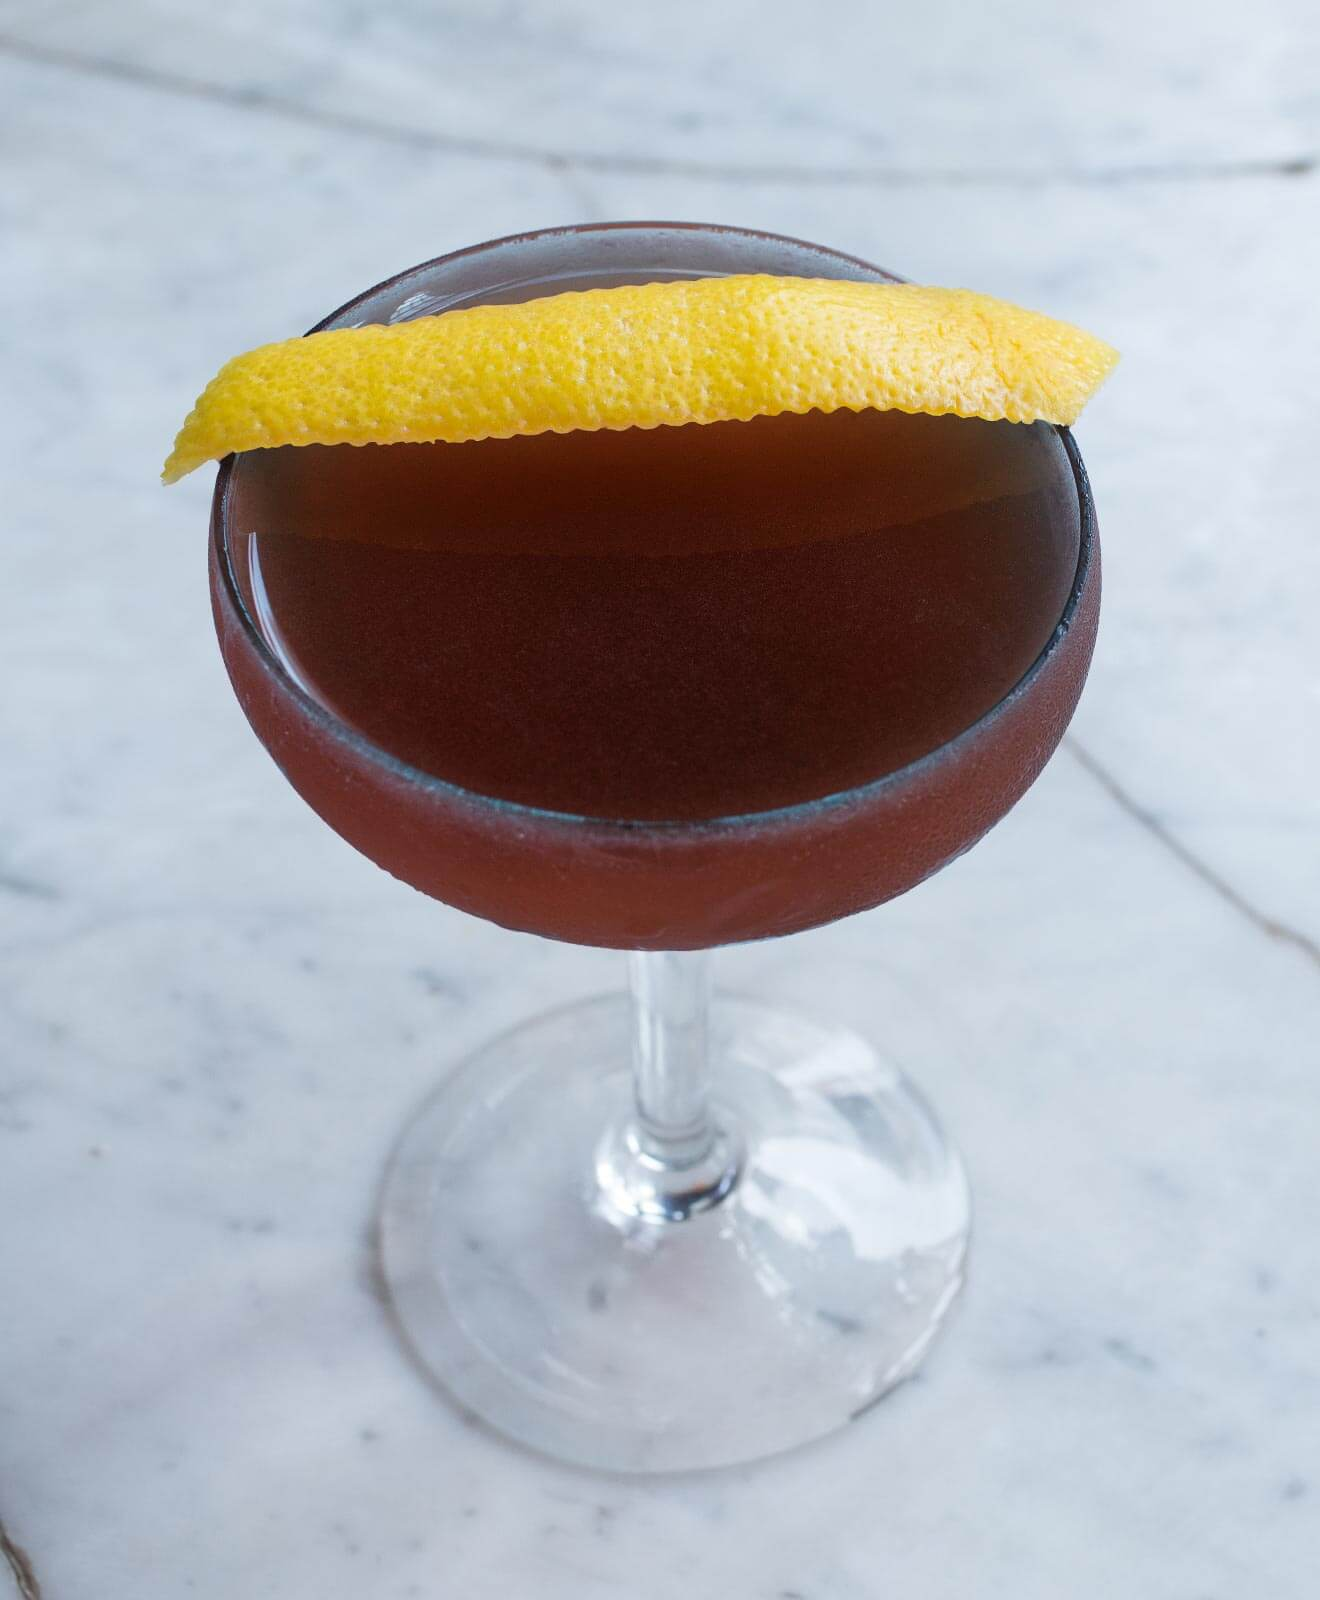 Trinidad Sour, cocktail with lemon peel garnish